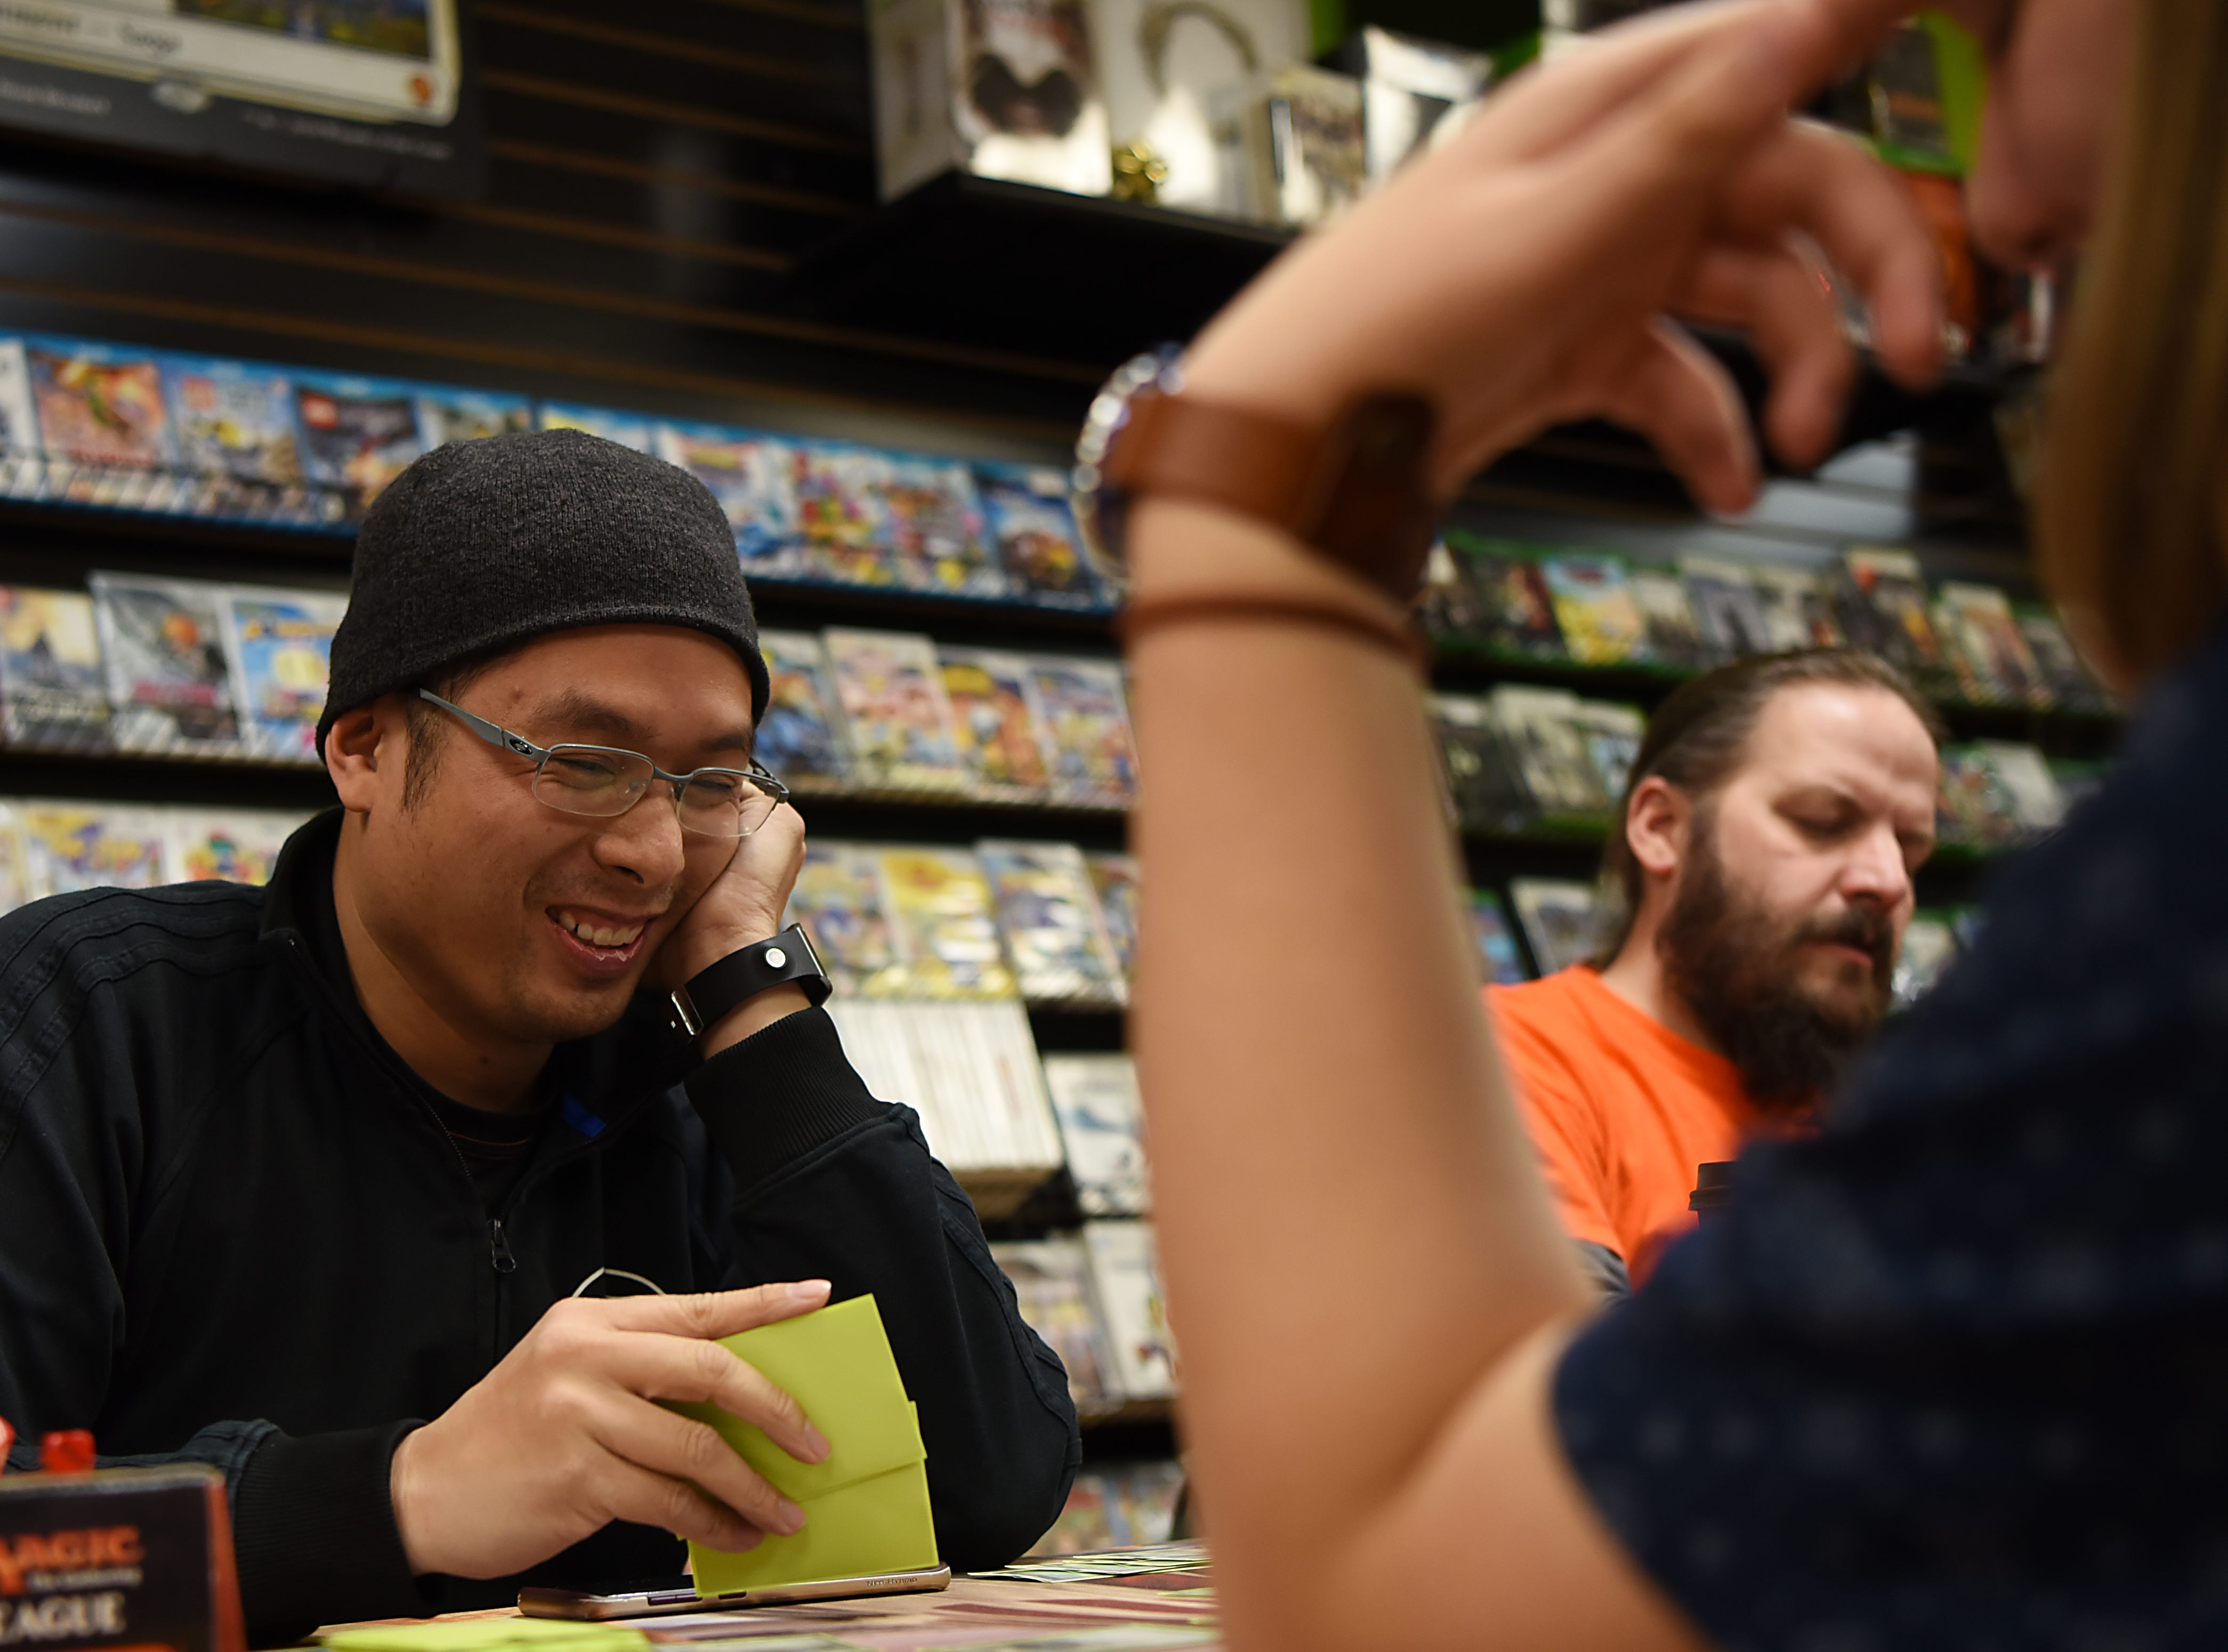 (From left) R.J. Moises from Clifton, Ian Dampman from Pompton Lakes and Isaac Dampman from Pompton Lakes play Magic: The Gathering at Level 1 Games in Pompton Plains on Friday November 30, 2018.